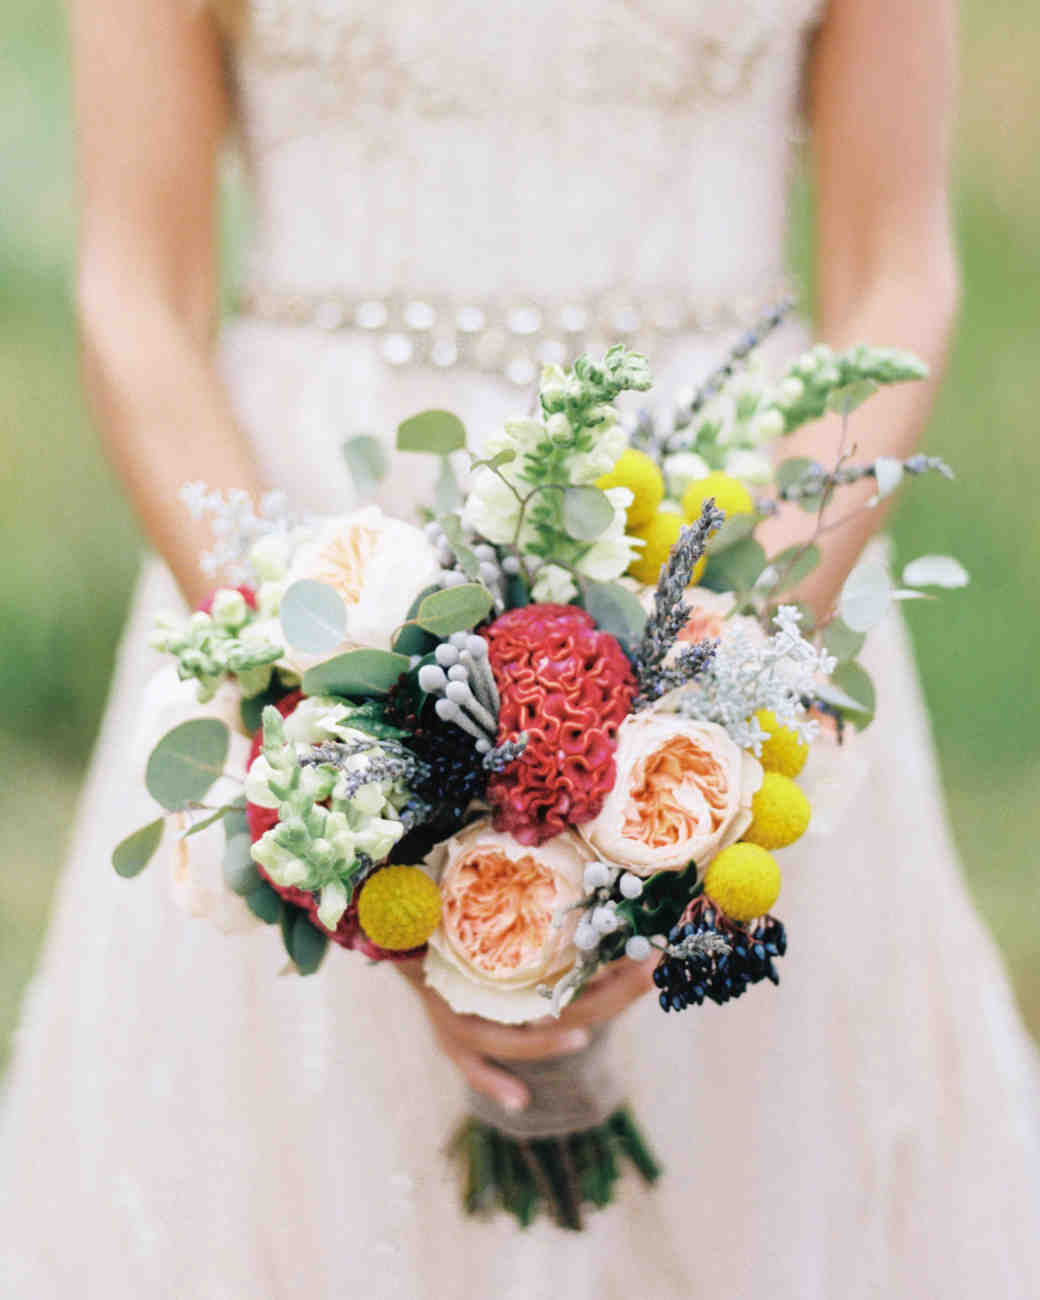 Harvest Wedding Ideas